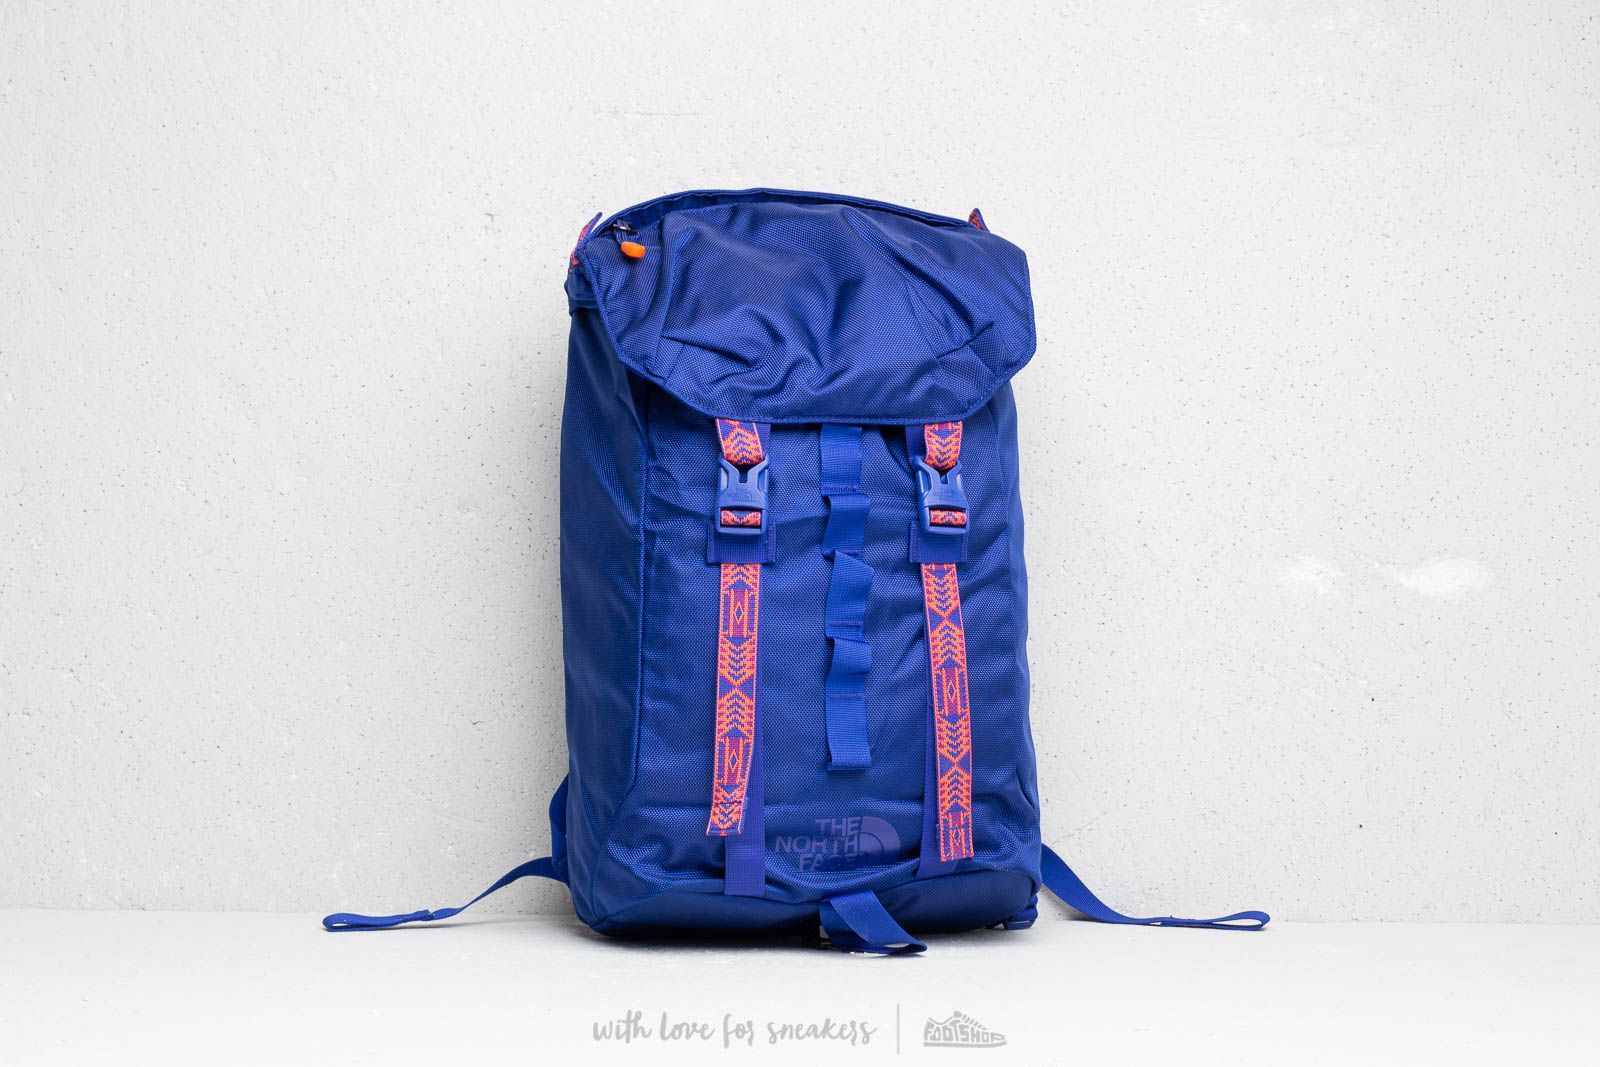 The North Face Lineage 23L Backpack